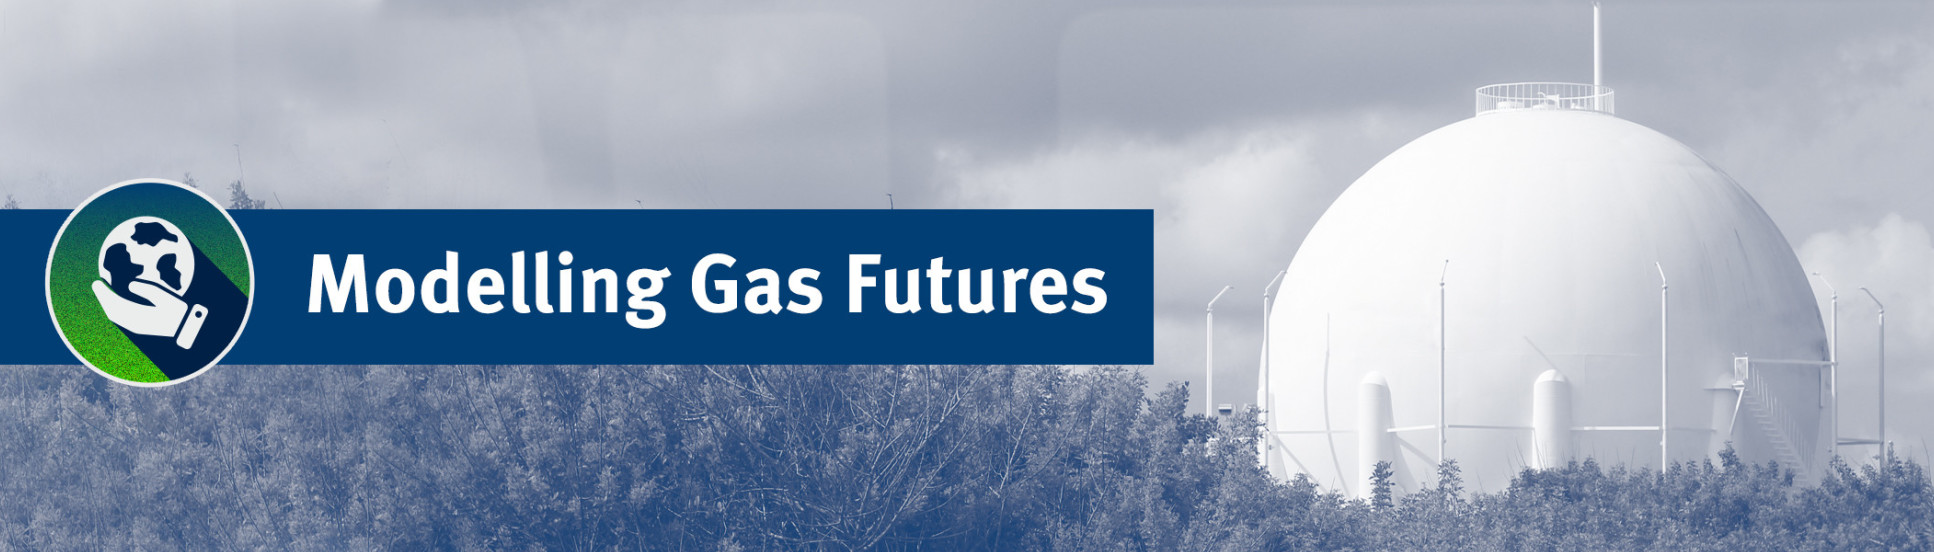 Modelling Gas Futures